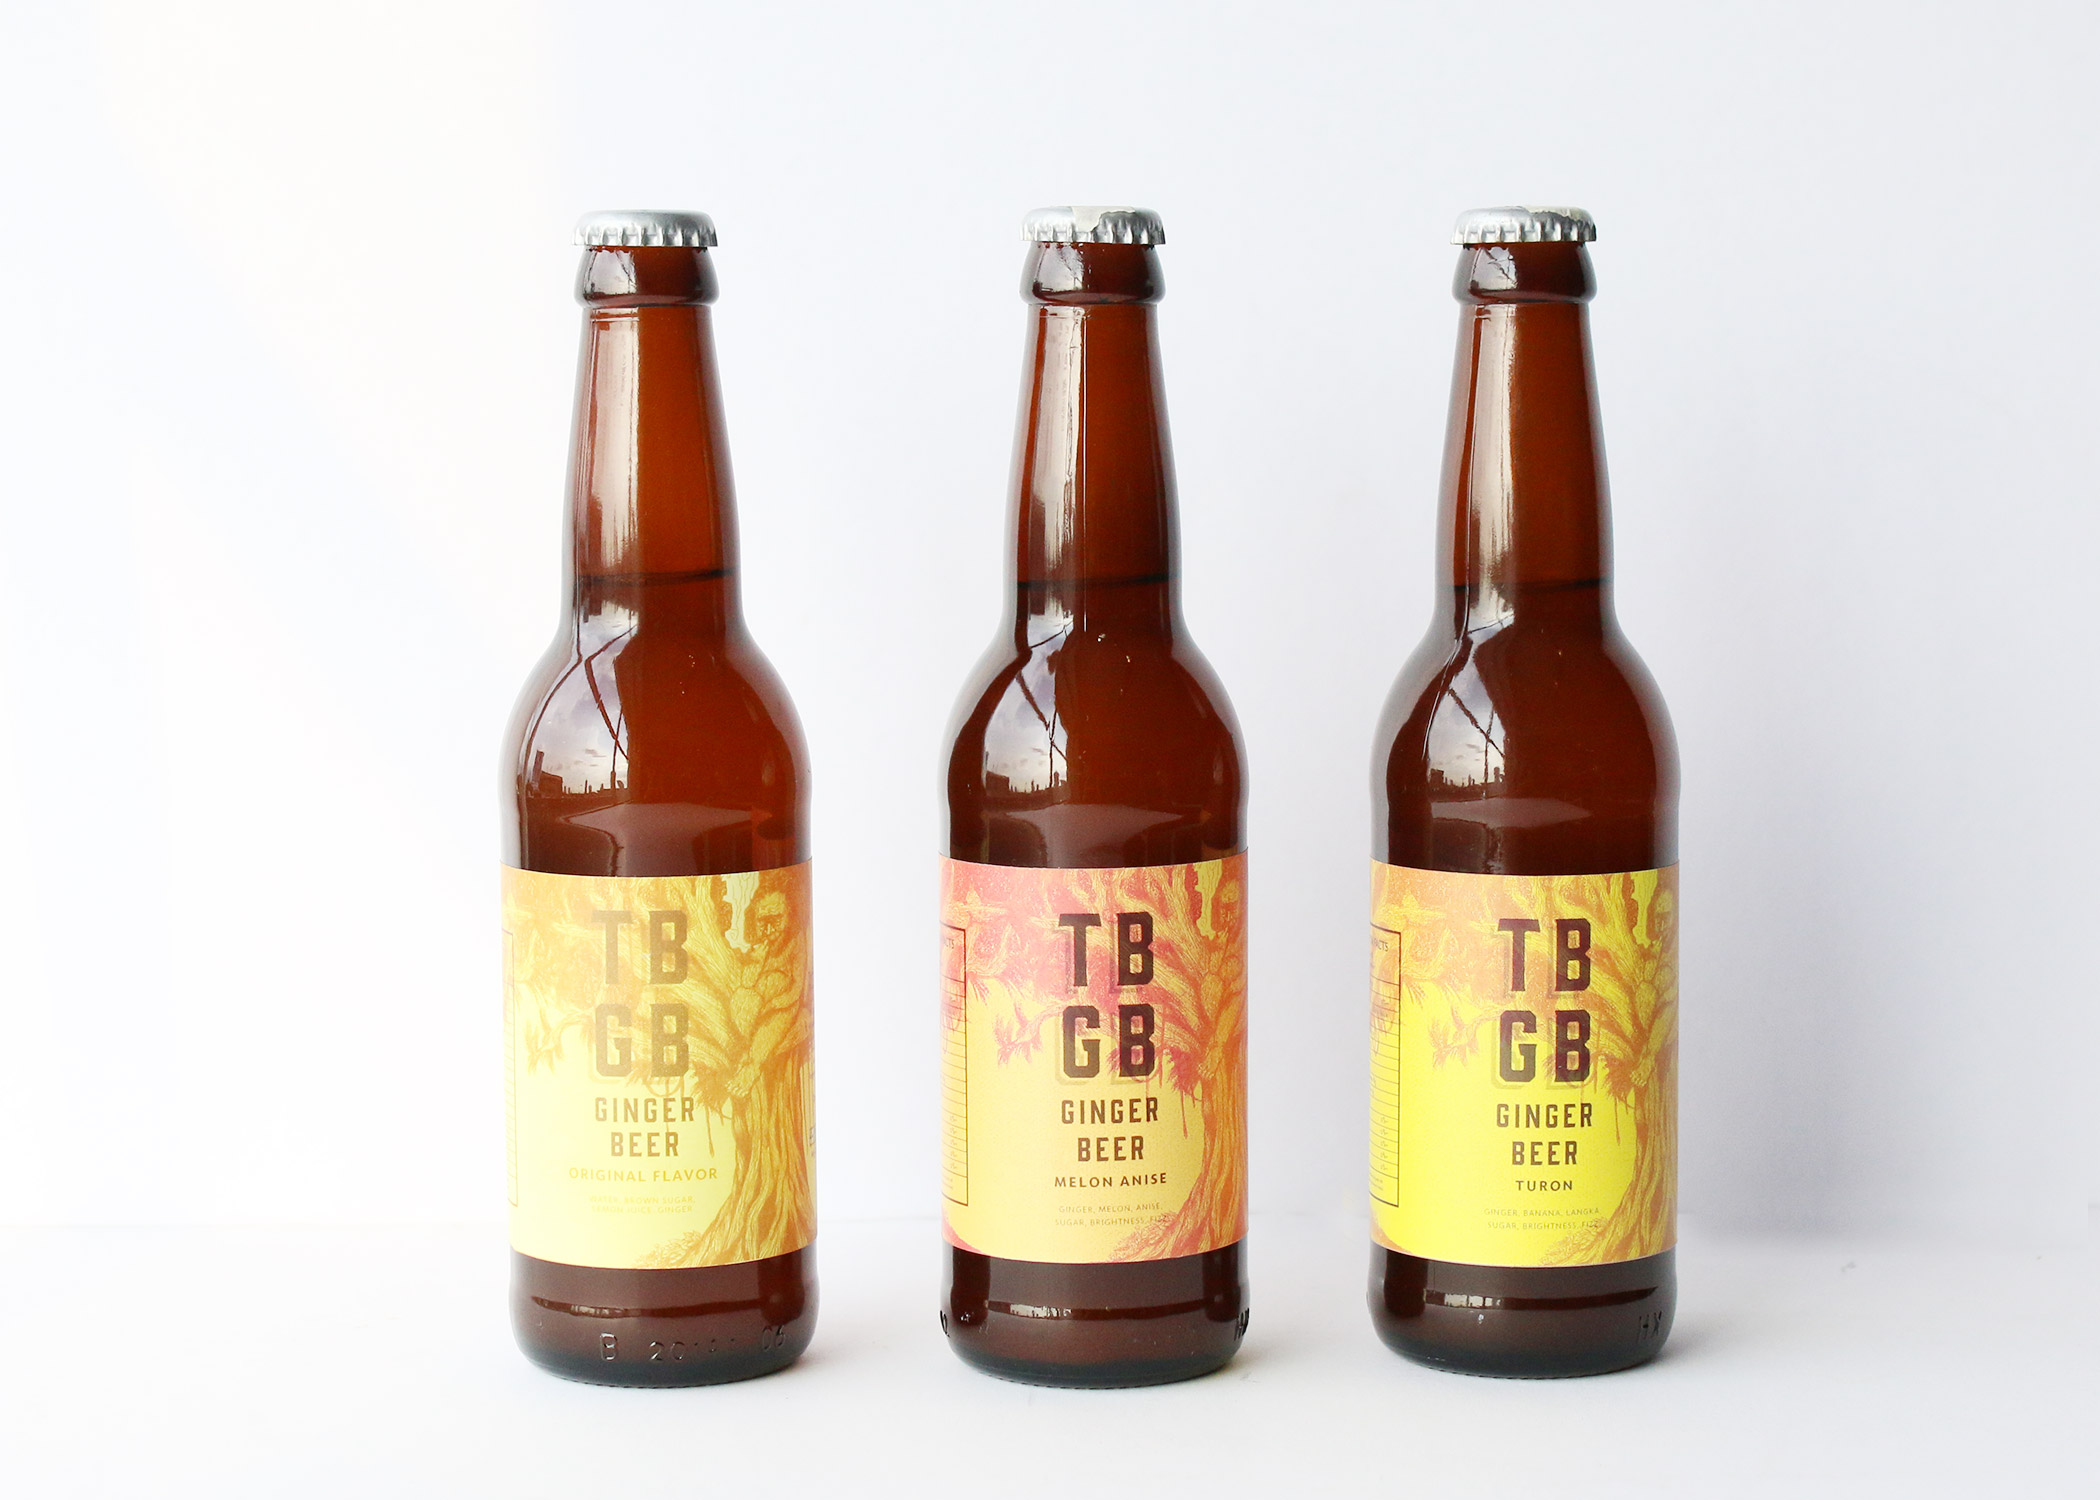 GINGER BEER - The Natural World is AWESOME!TBGB is our bottled ginger beer. No, it is not alcoholic. The difference between ginger ale and ginger beer is that the latter is fermented and therefore has more of that ginger taste.